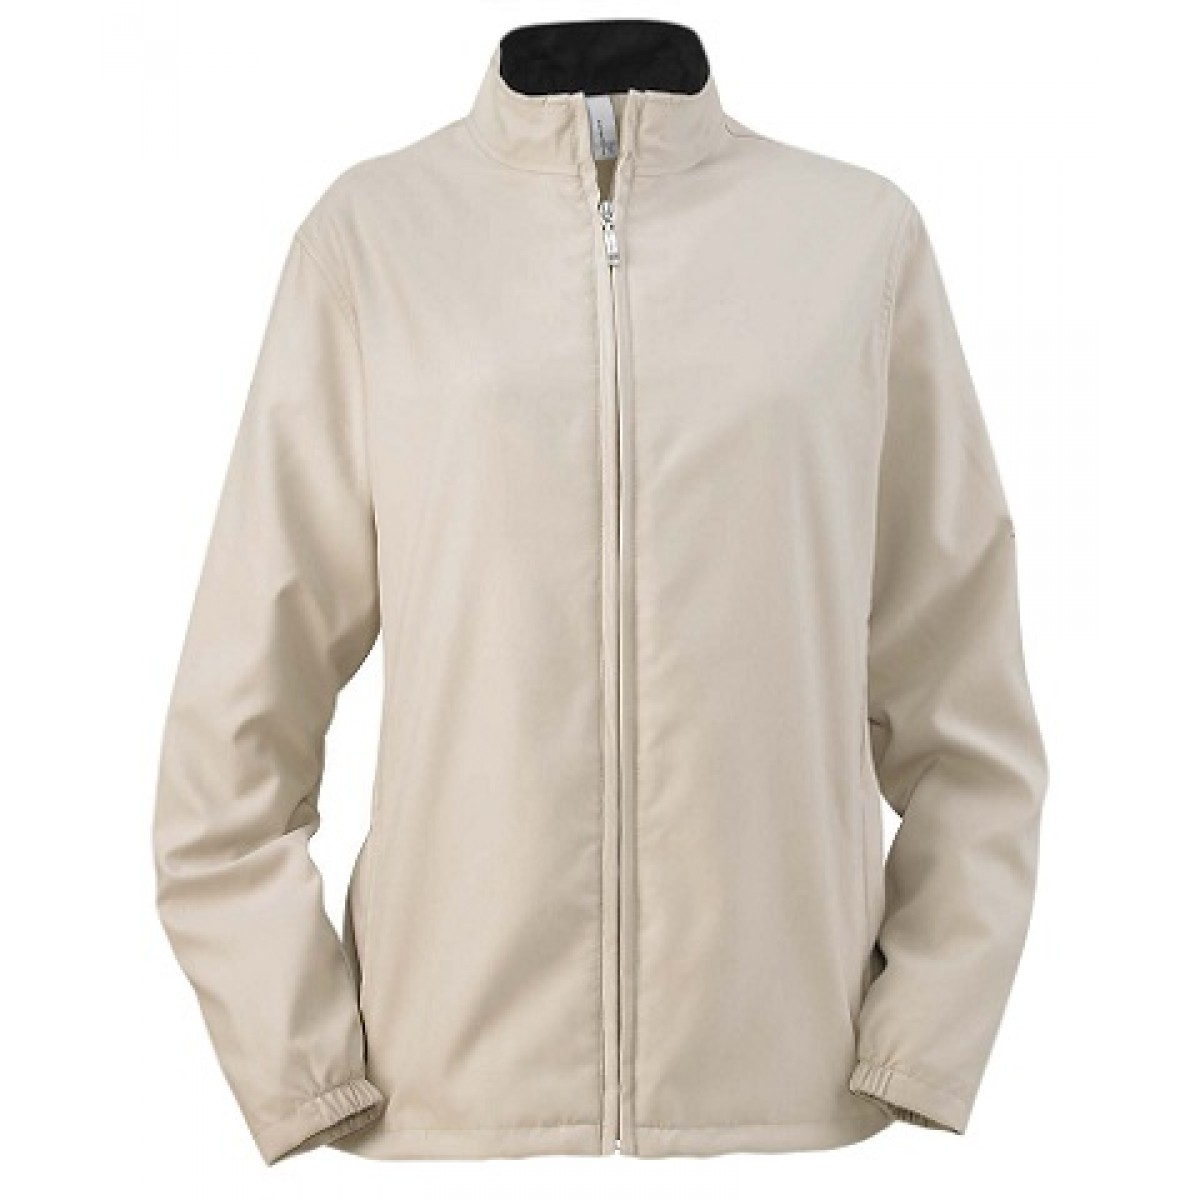 Ladies' Full-Zip Lined Wind Jacket-2XL